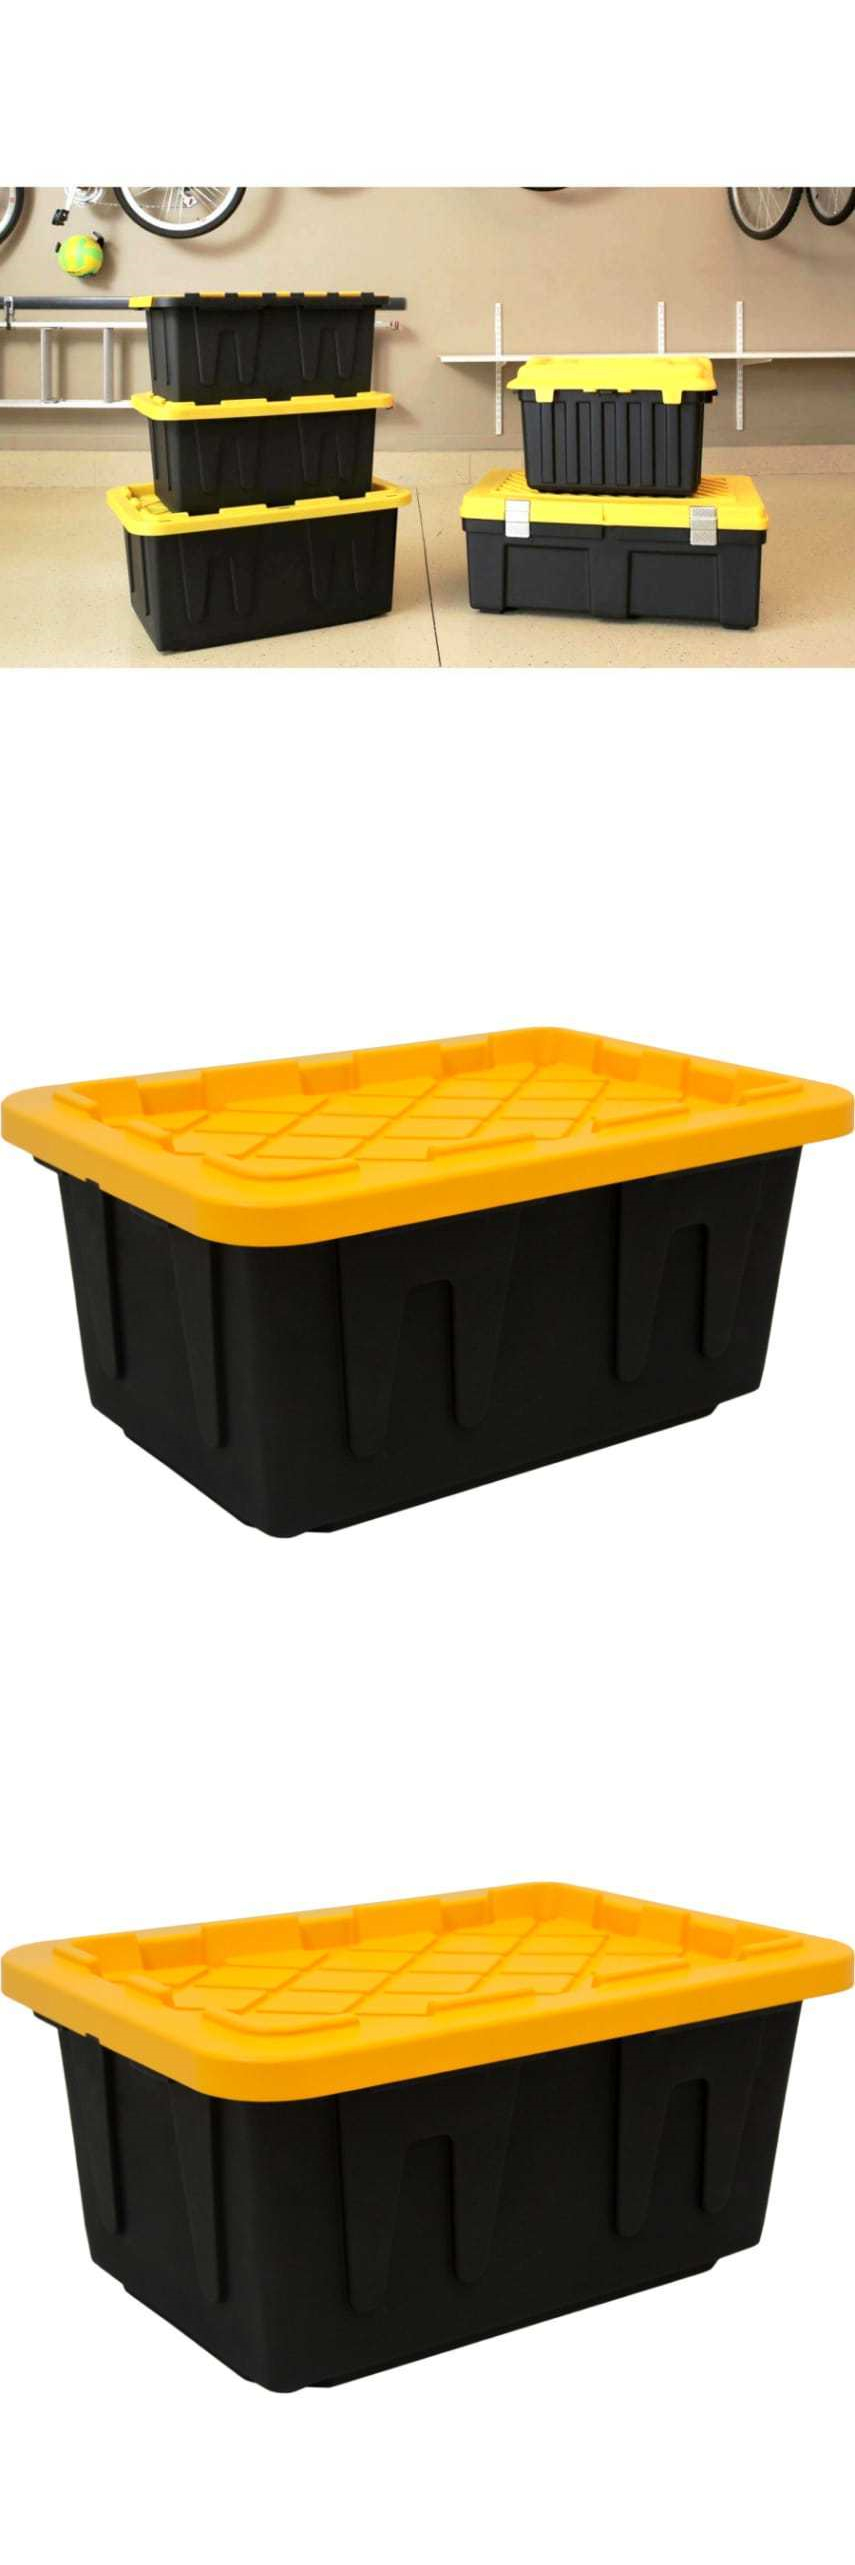 Storage boxes gallon tough tote heavy duty storage